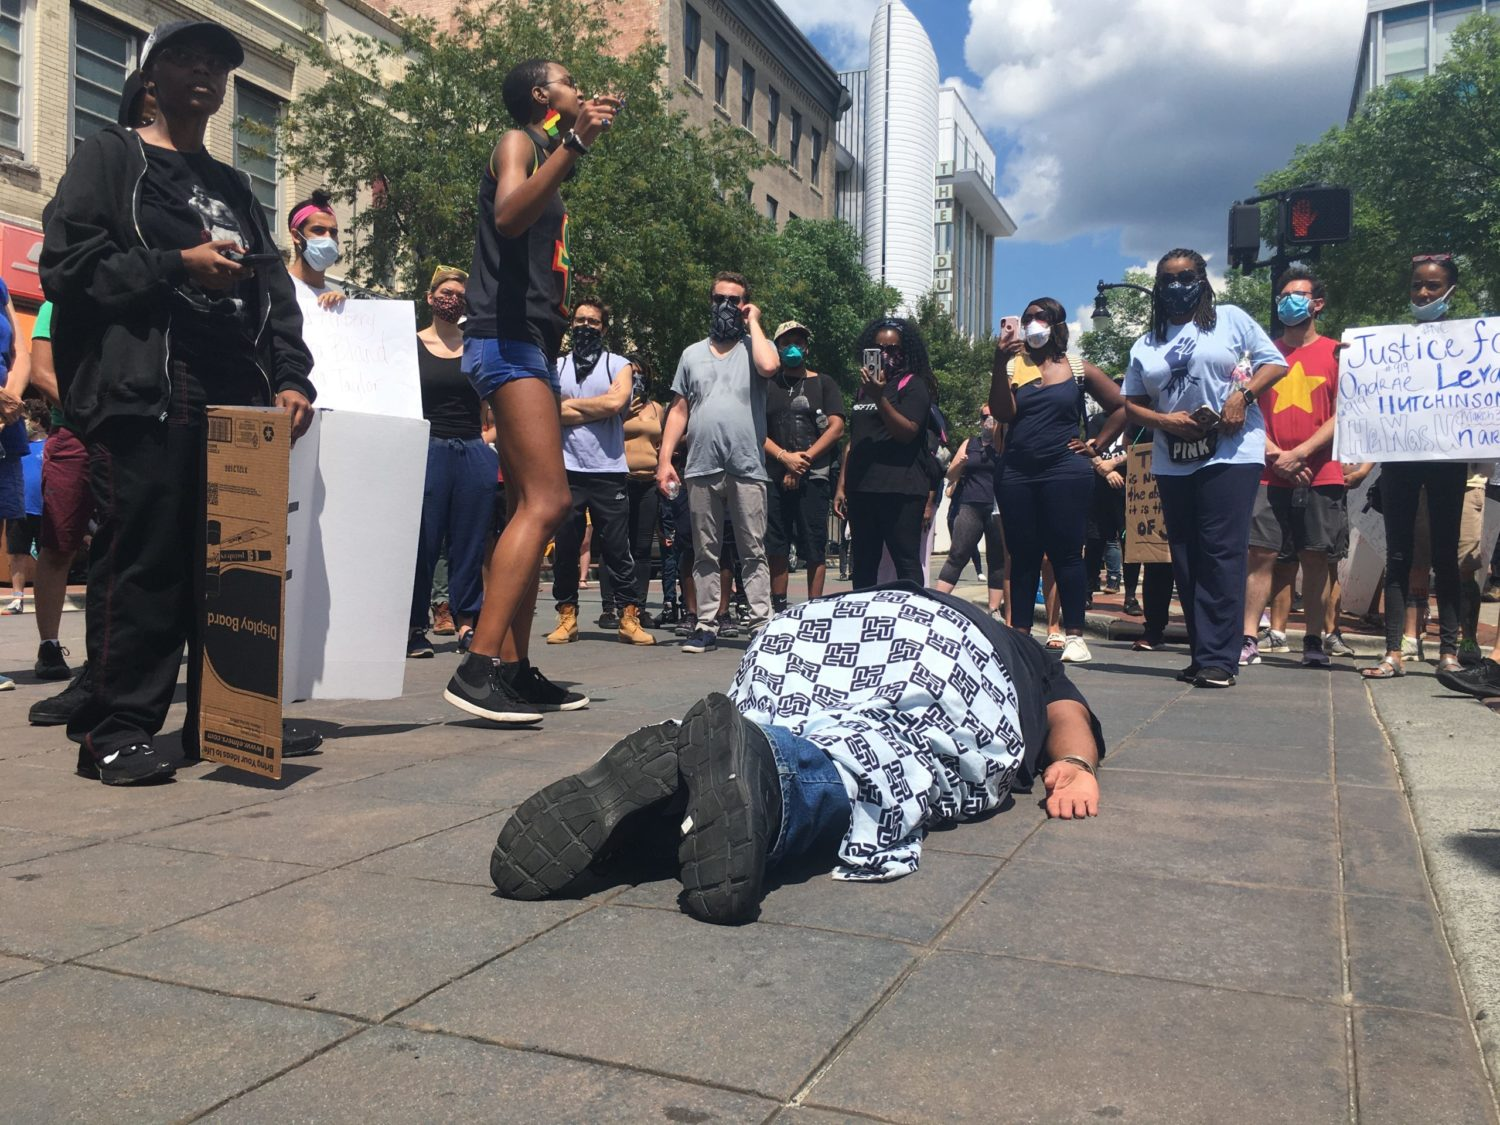 """Durham resident Mystic Waters, a.k.a. Chauncey Taylor, lay on the burning concrete and screamed, """"I can't breathe,"""" punctuating the points made by other protestors speaking to the crowd about racial injustice."""